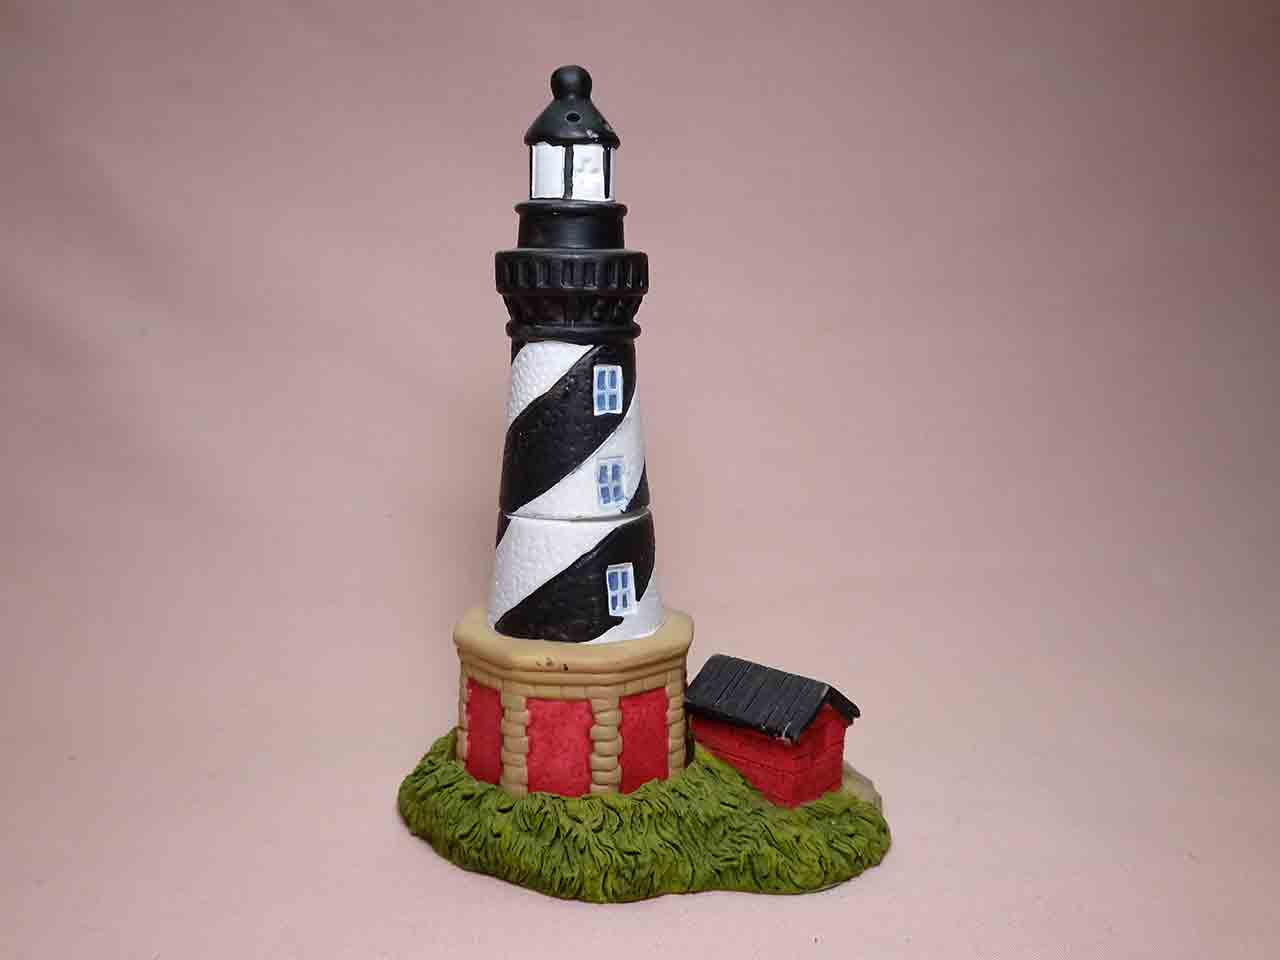 Cape Shore lighthouse salt and pepper shakers